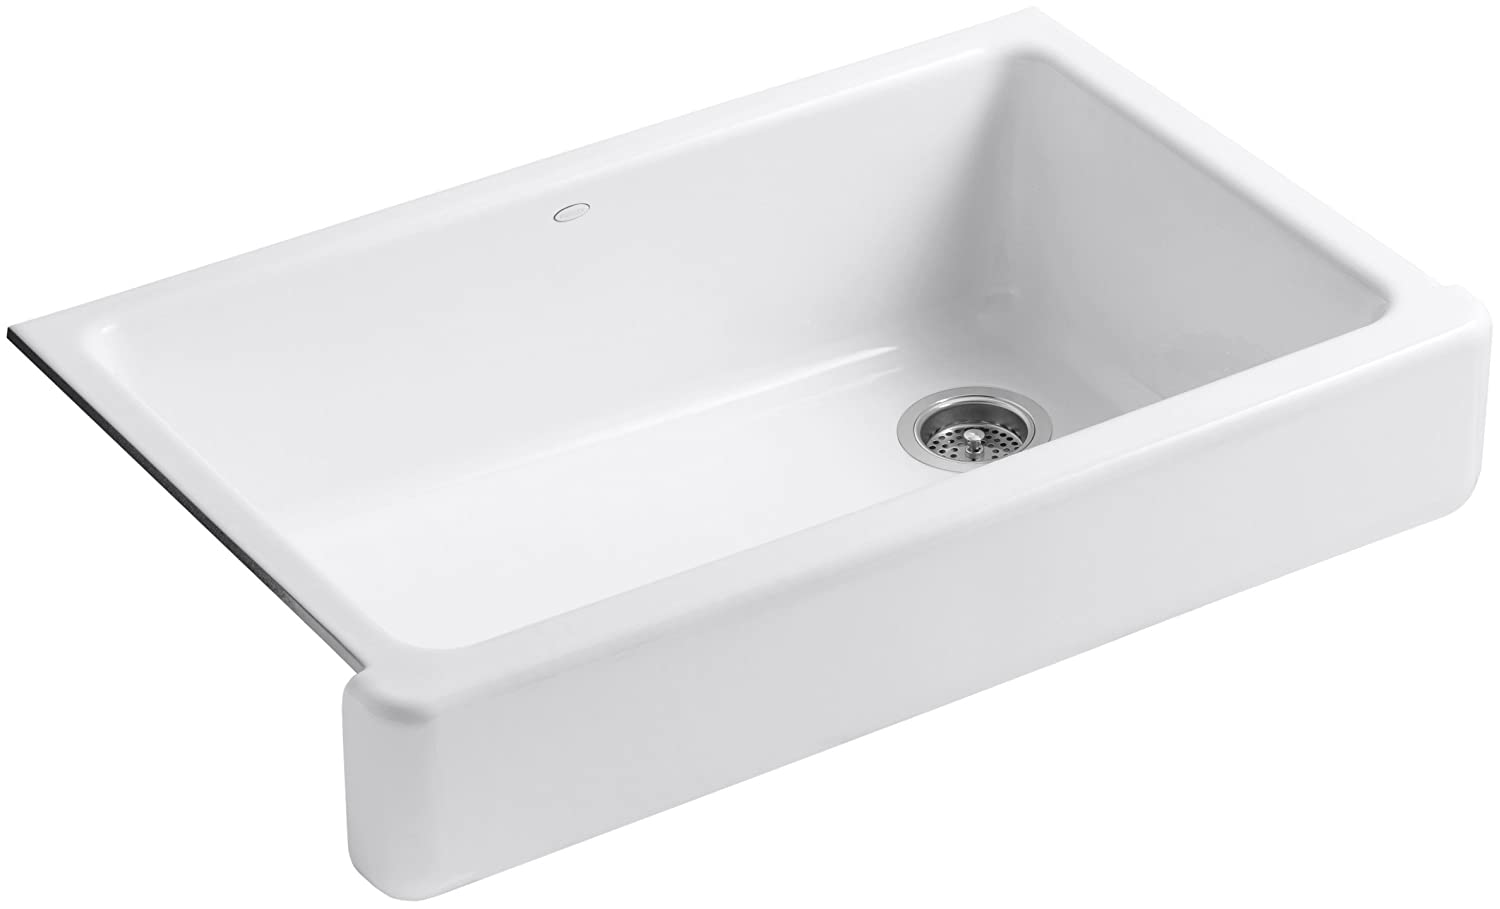 KOHLER K 6488 0 Whitehaven Self Trimming Apron Front Single Basin Sink With  Short Apron, White   Single Bowl Sinks   Amazon.com